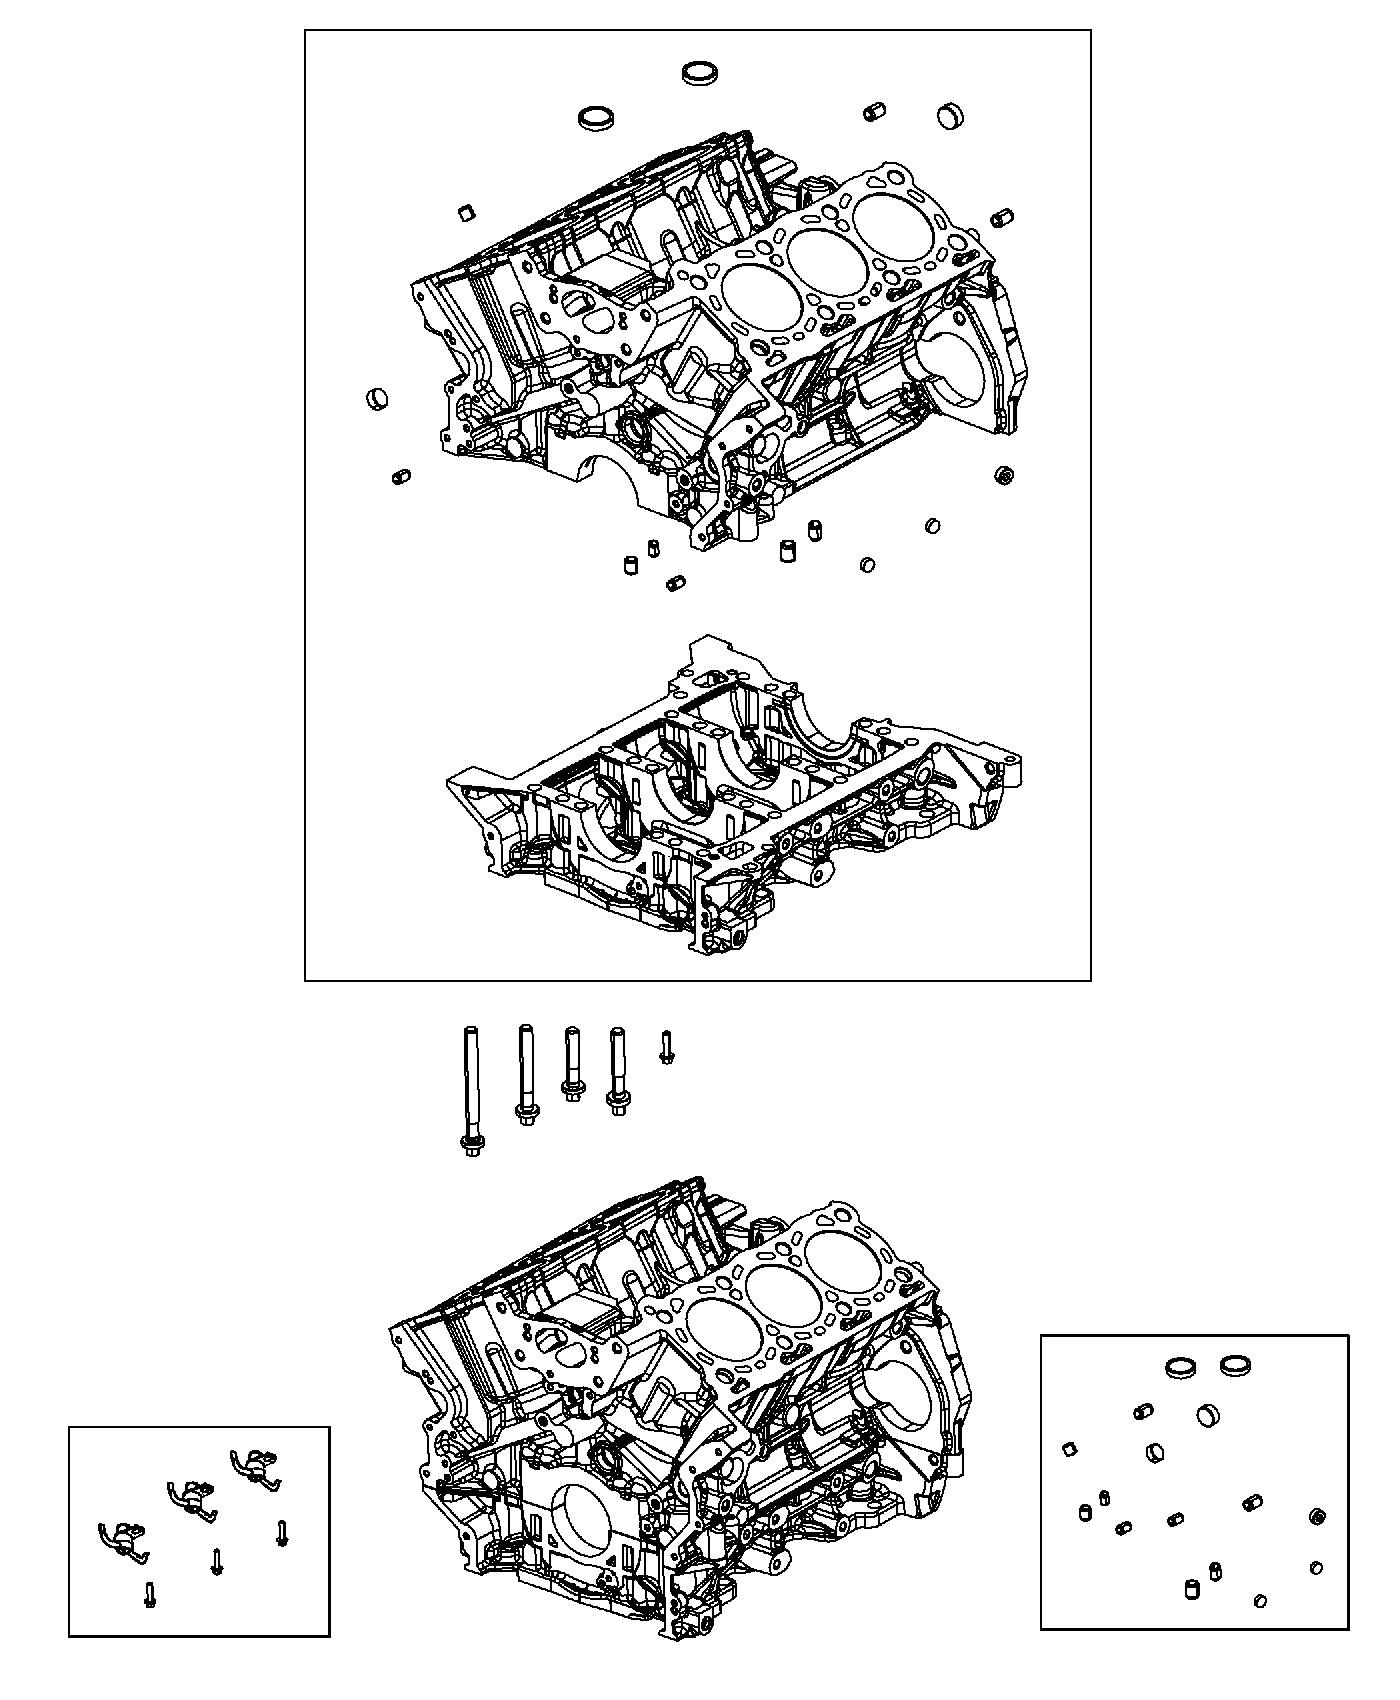 2014 Grand Cherokee Engine Diagram